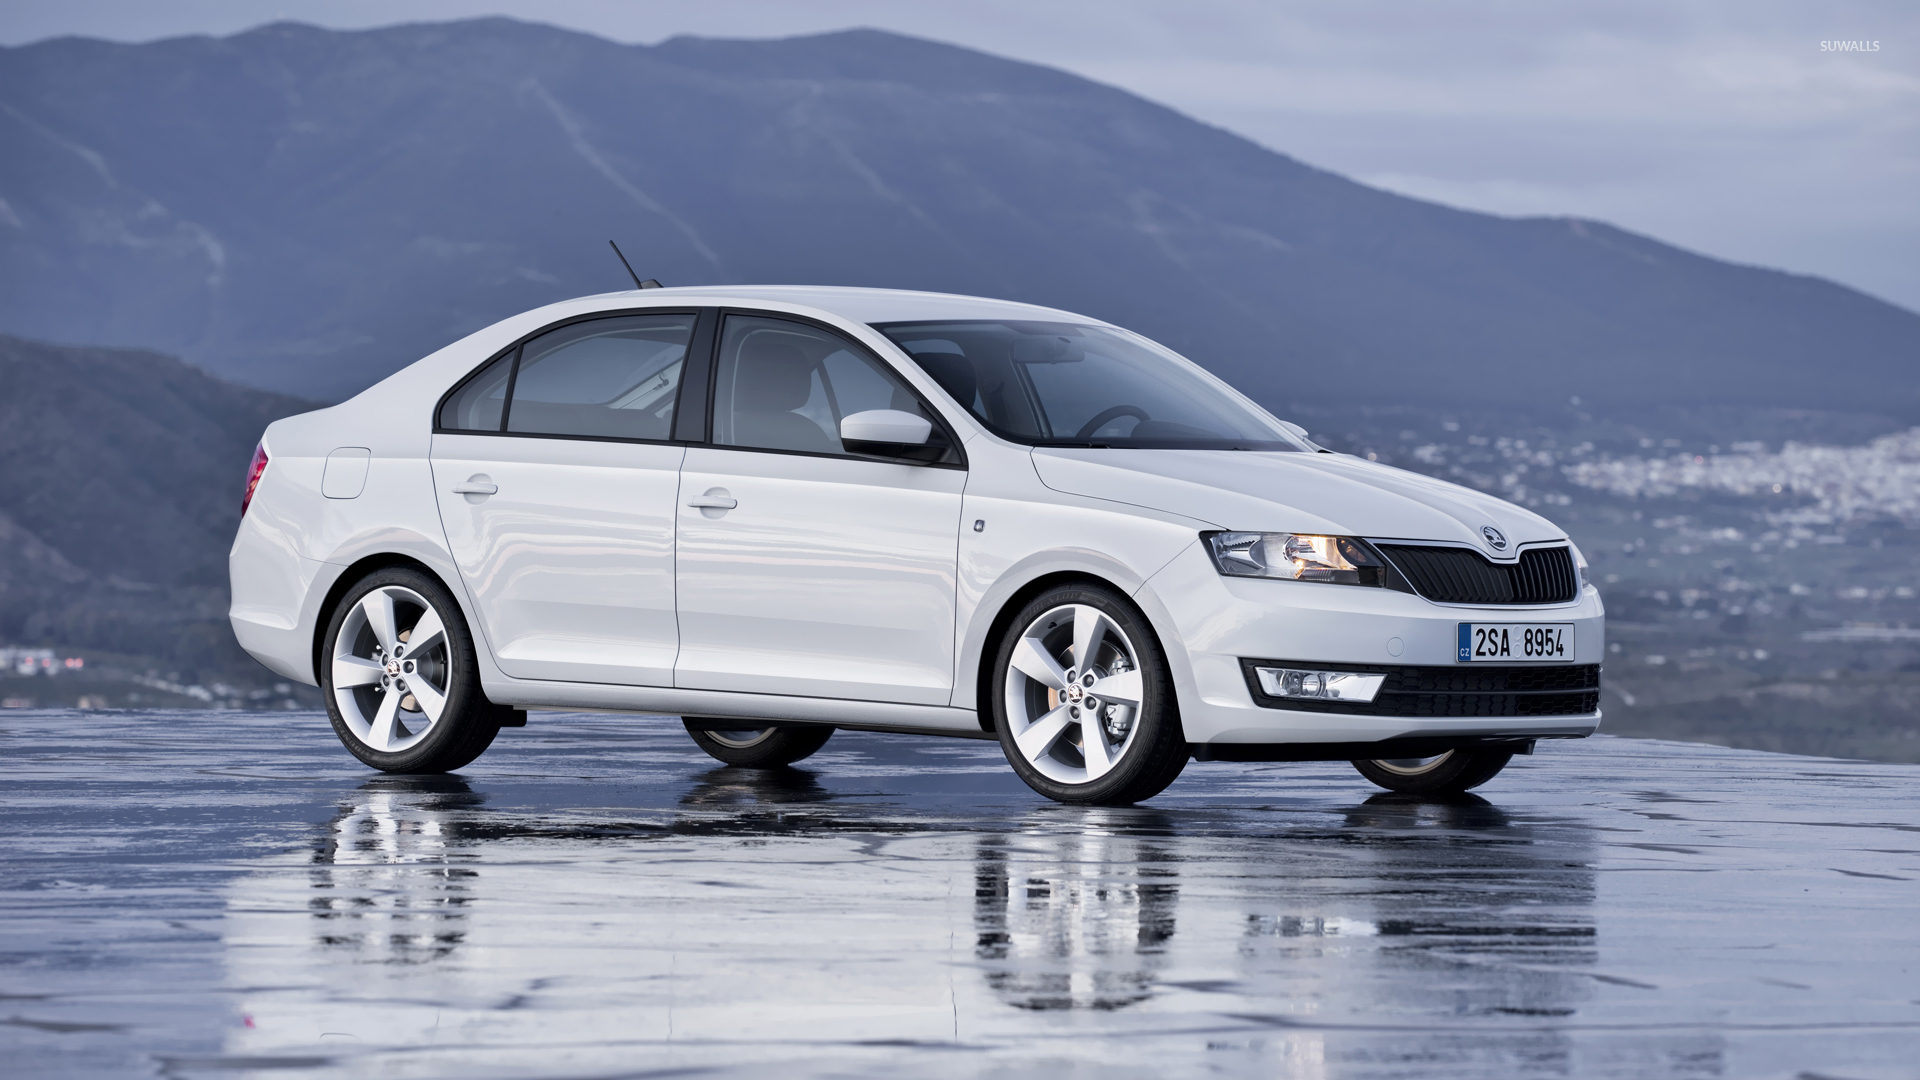 Front Side View Of A 2013 Skoda Rapid Wallpaper Car